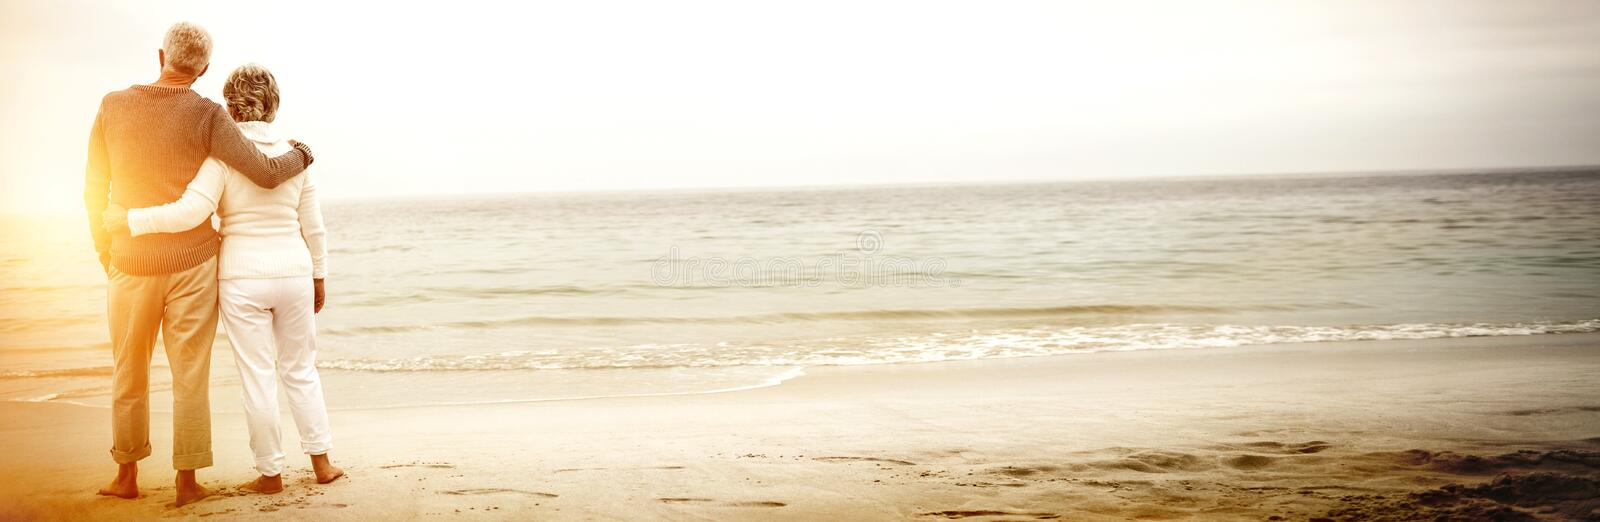 Rear view of senior couple embracing at beach royalty free stock photo